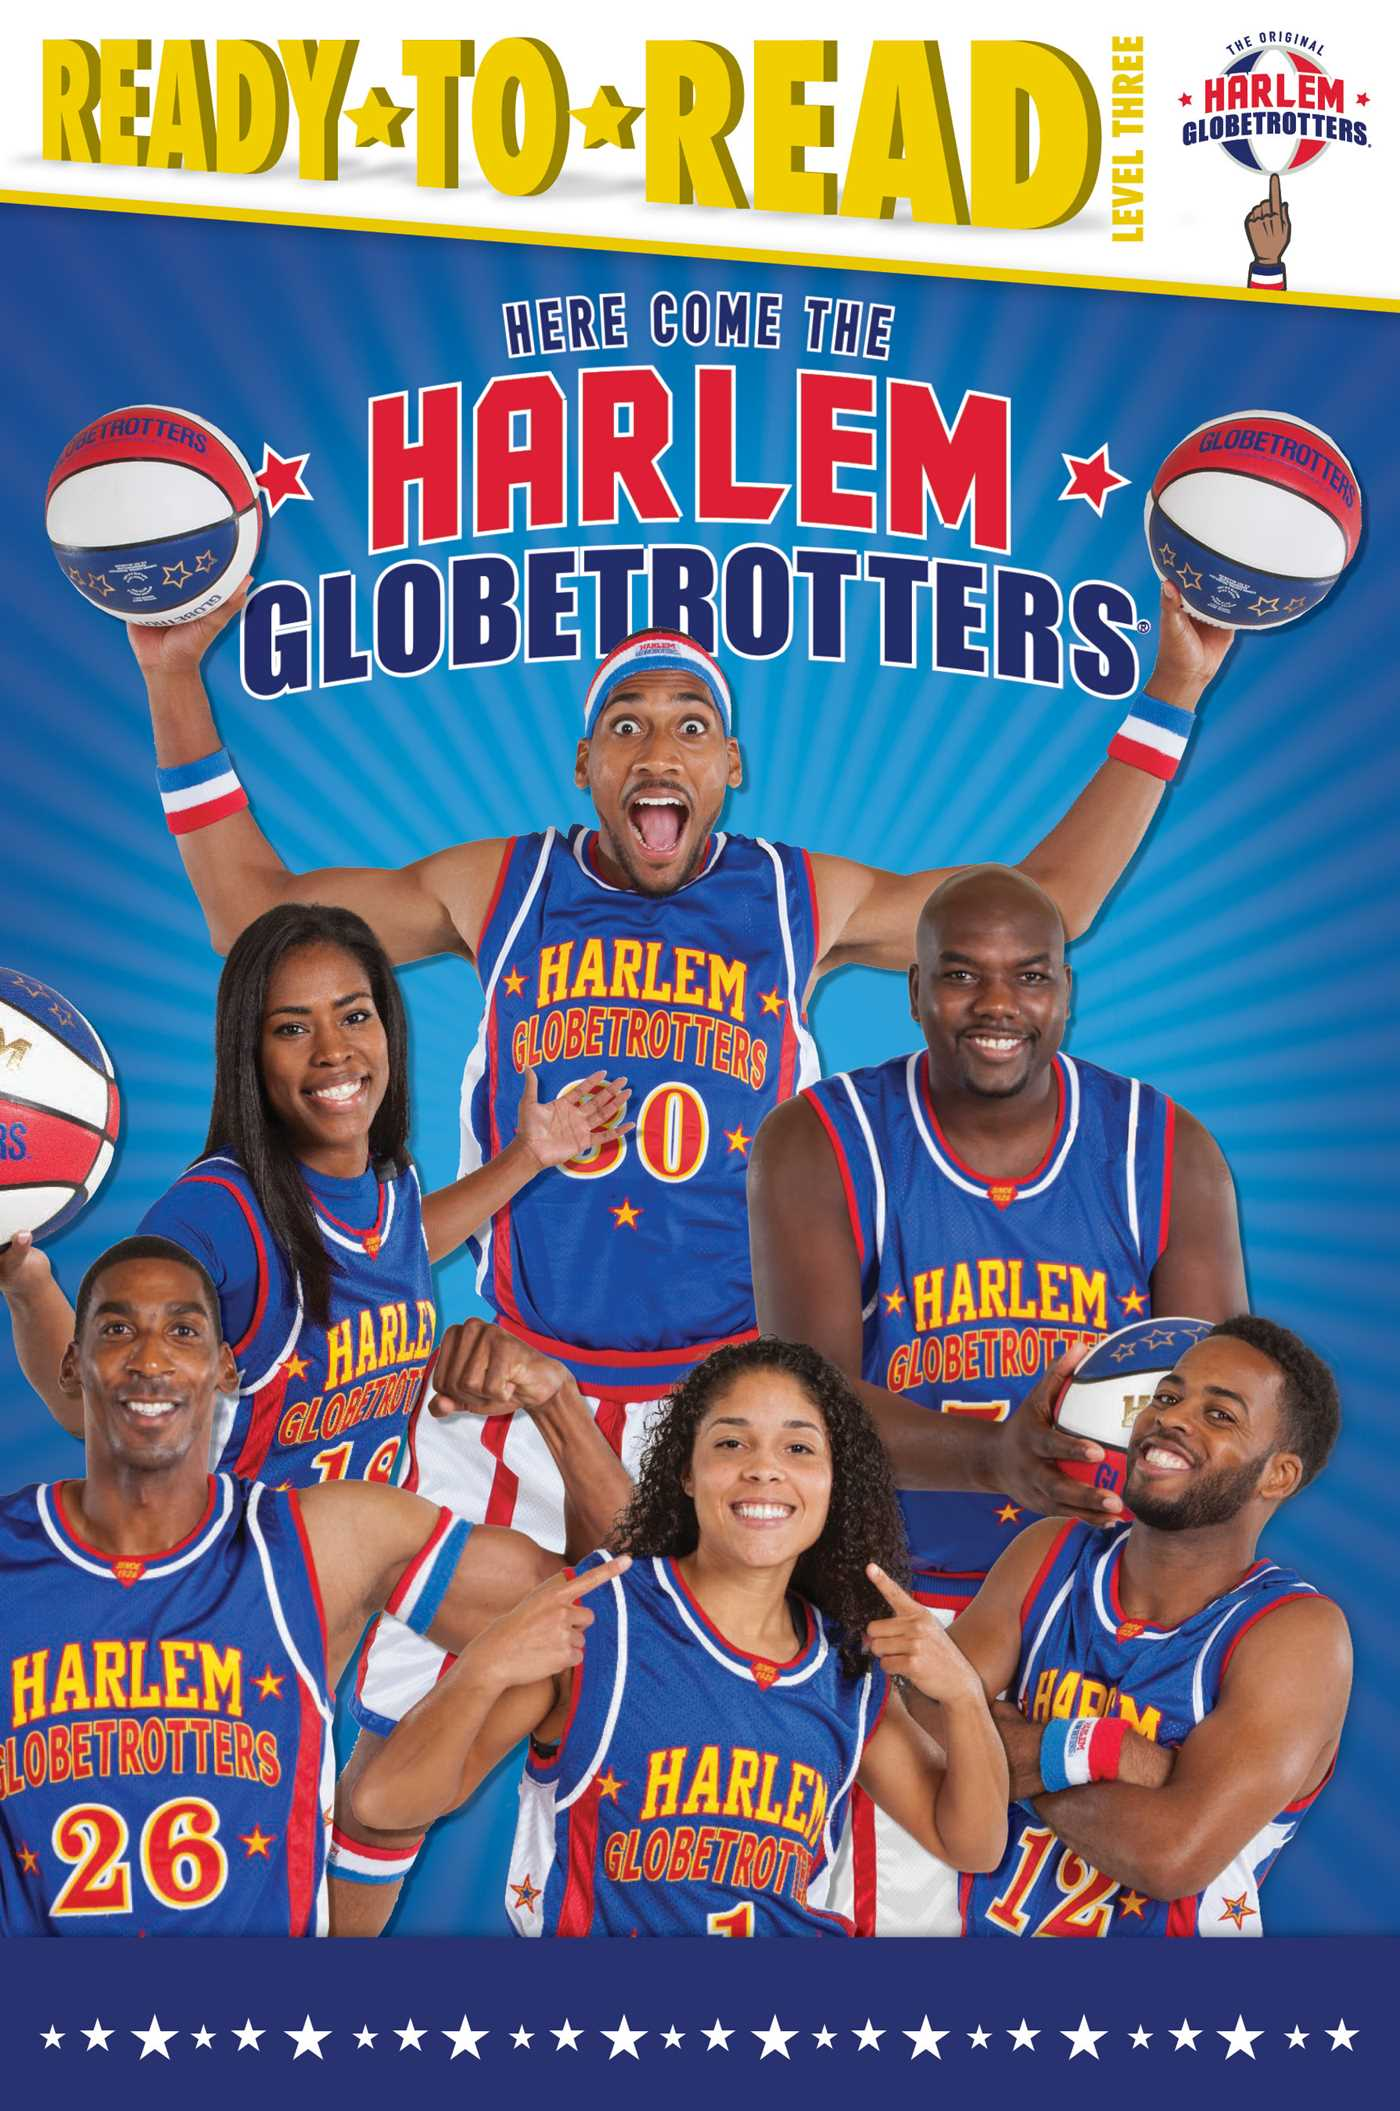 Here come the harlem globetrotters 9781481487450 hr